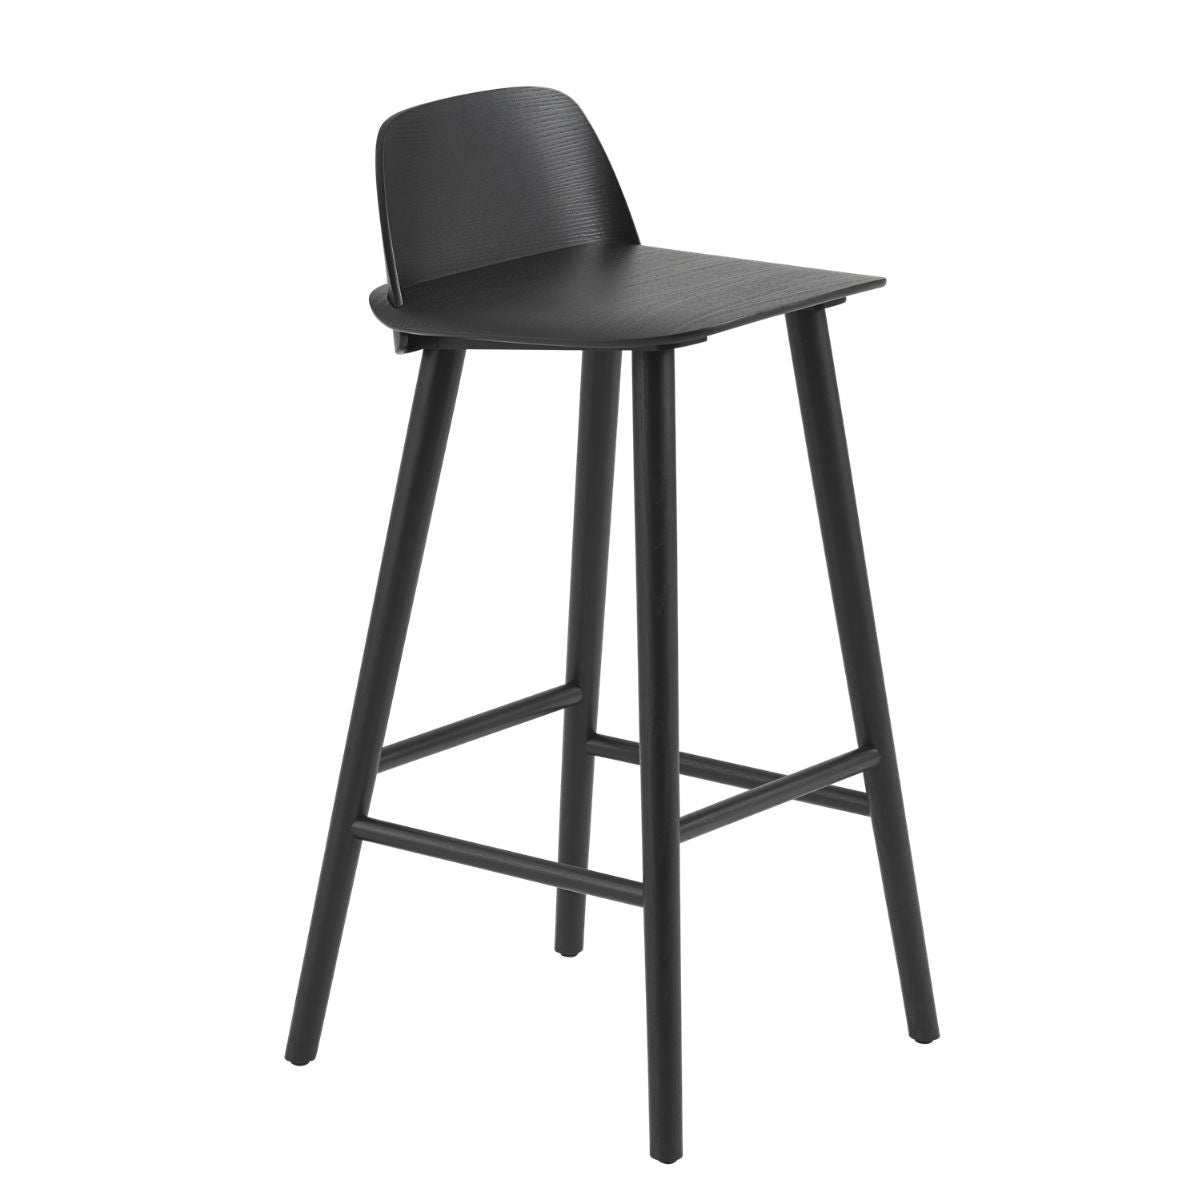 Muuto Nerd bar stool 75cm, black